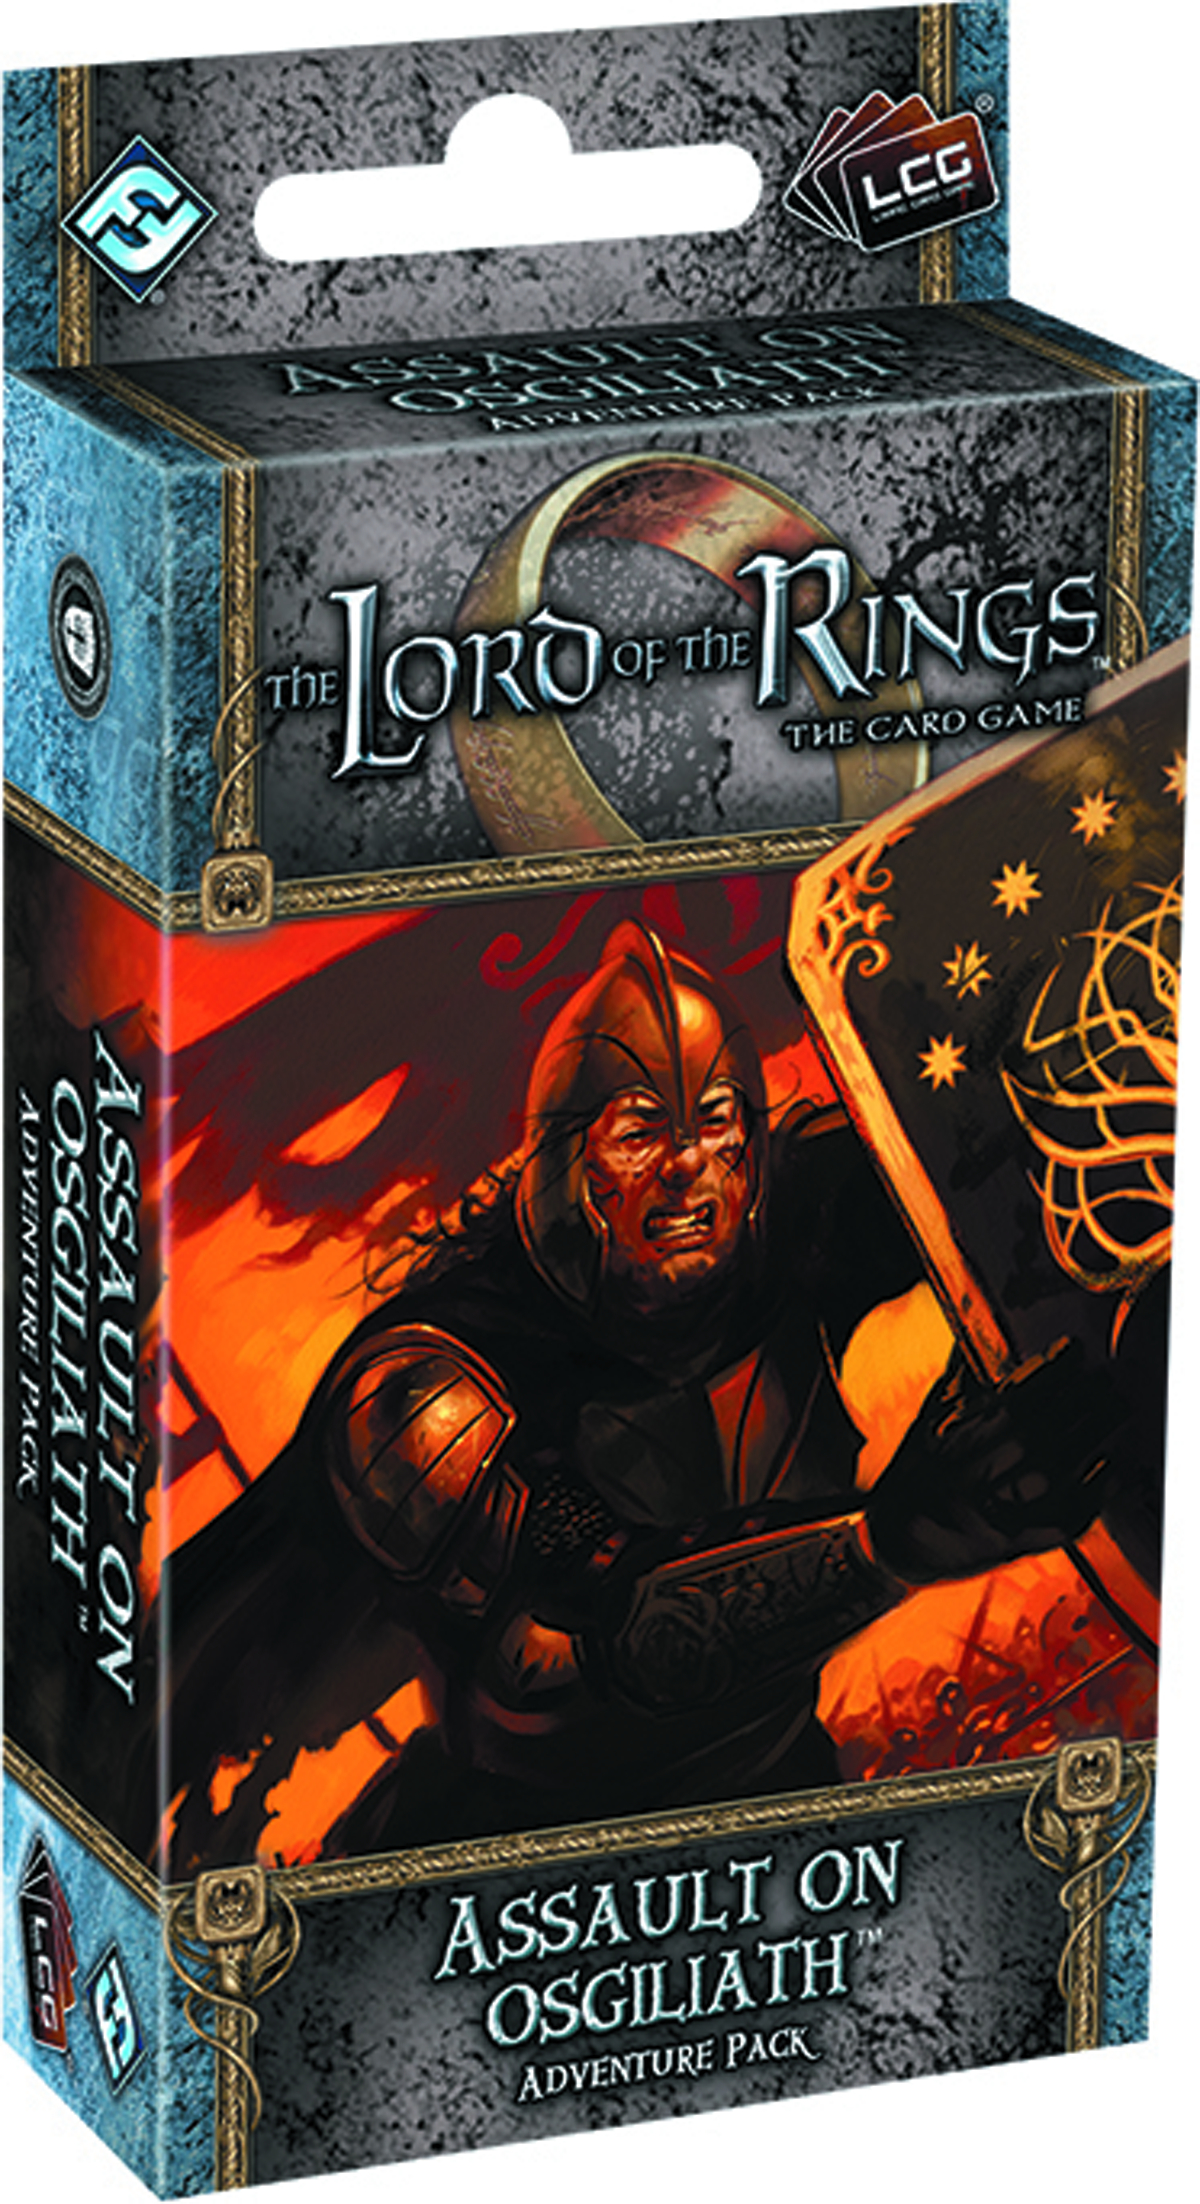 LORD RINGS LCG ASSAULT ON OSGILIATH ADV PACK